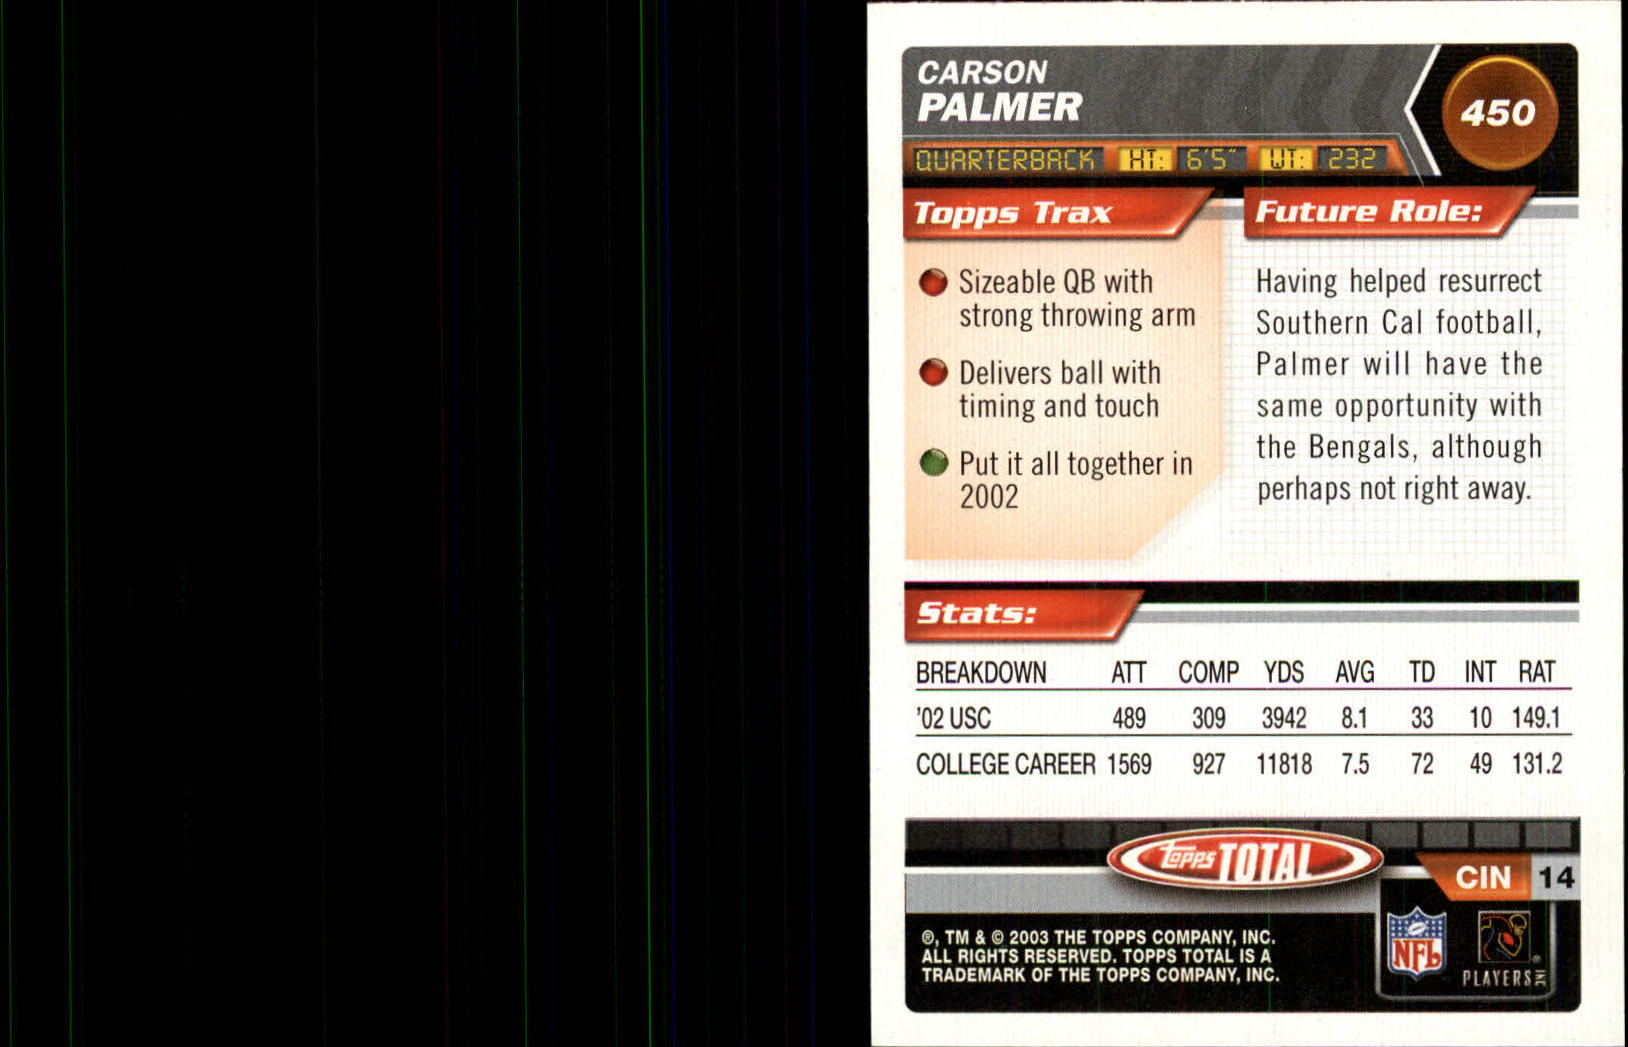 2003 Topps Total Silver #450 Carson Palmer back image